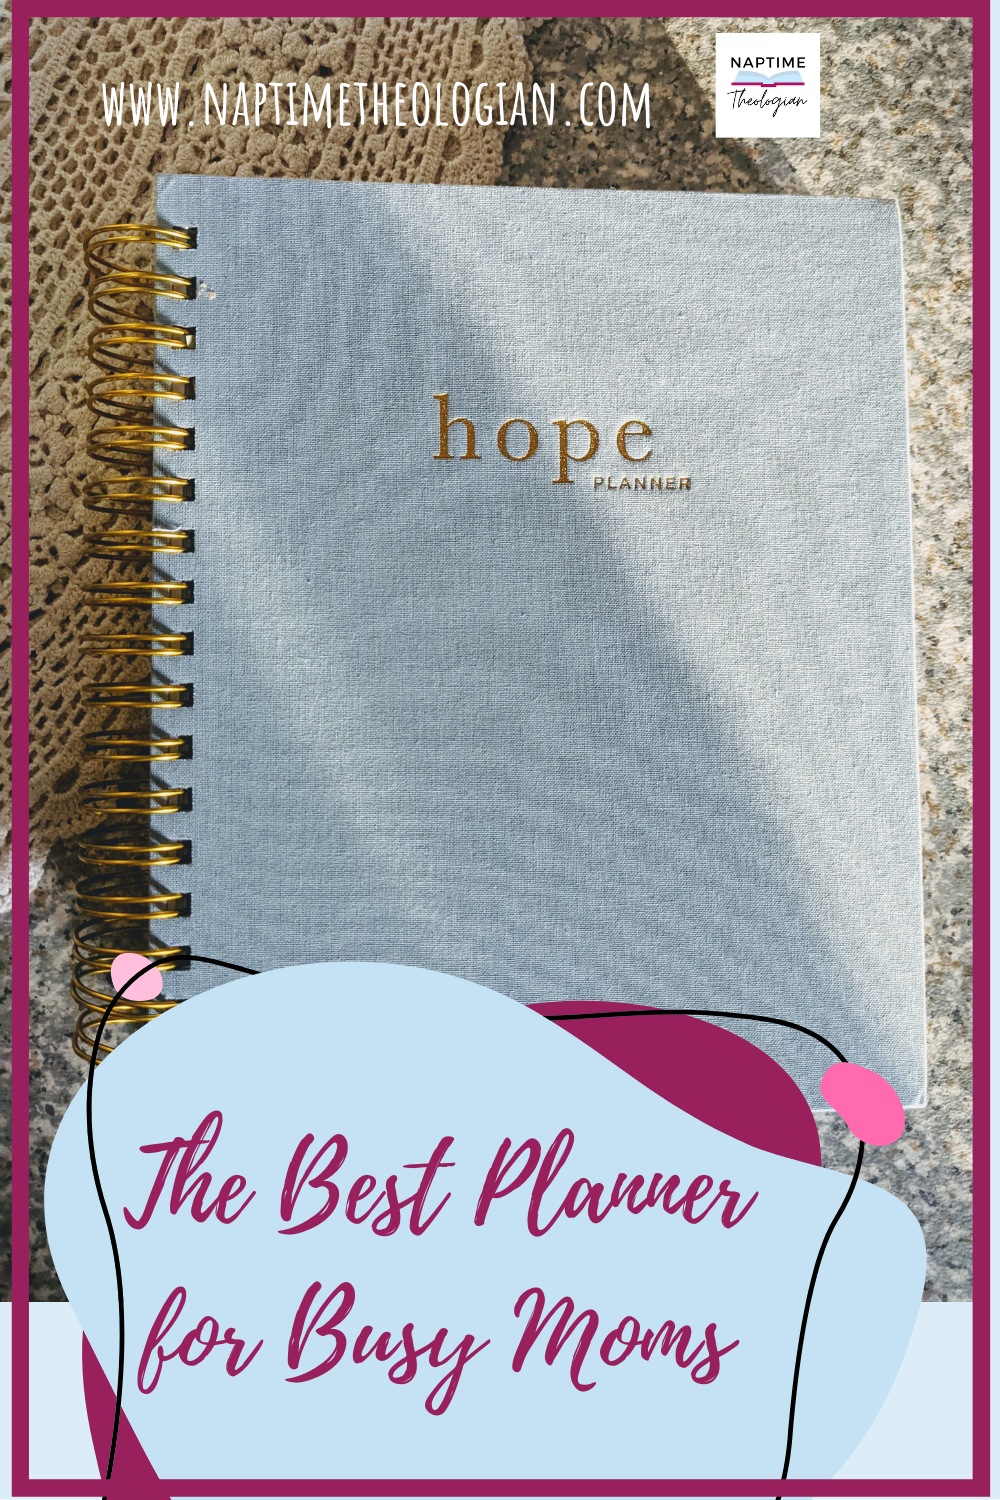 The Hope Planner | Best Planner for Busy Moms